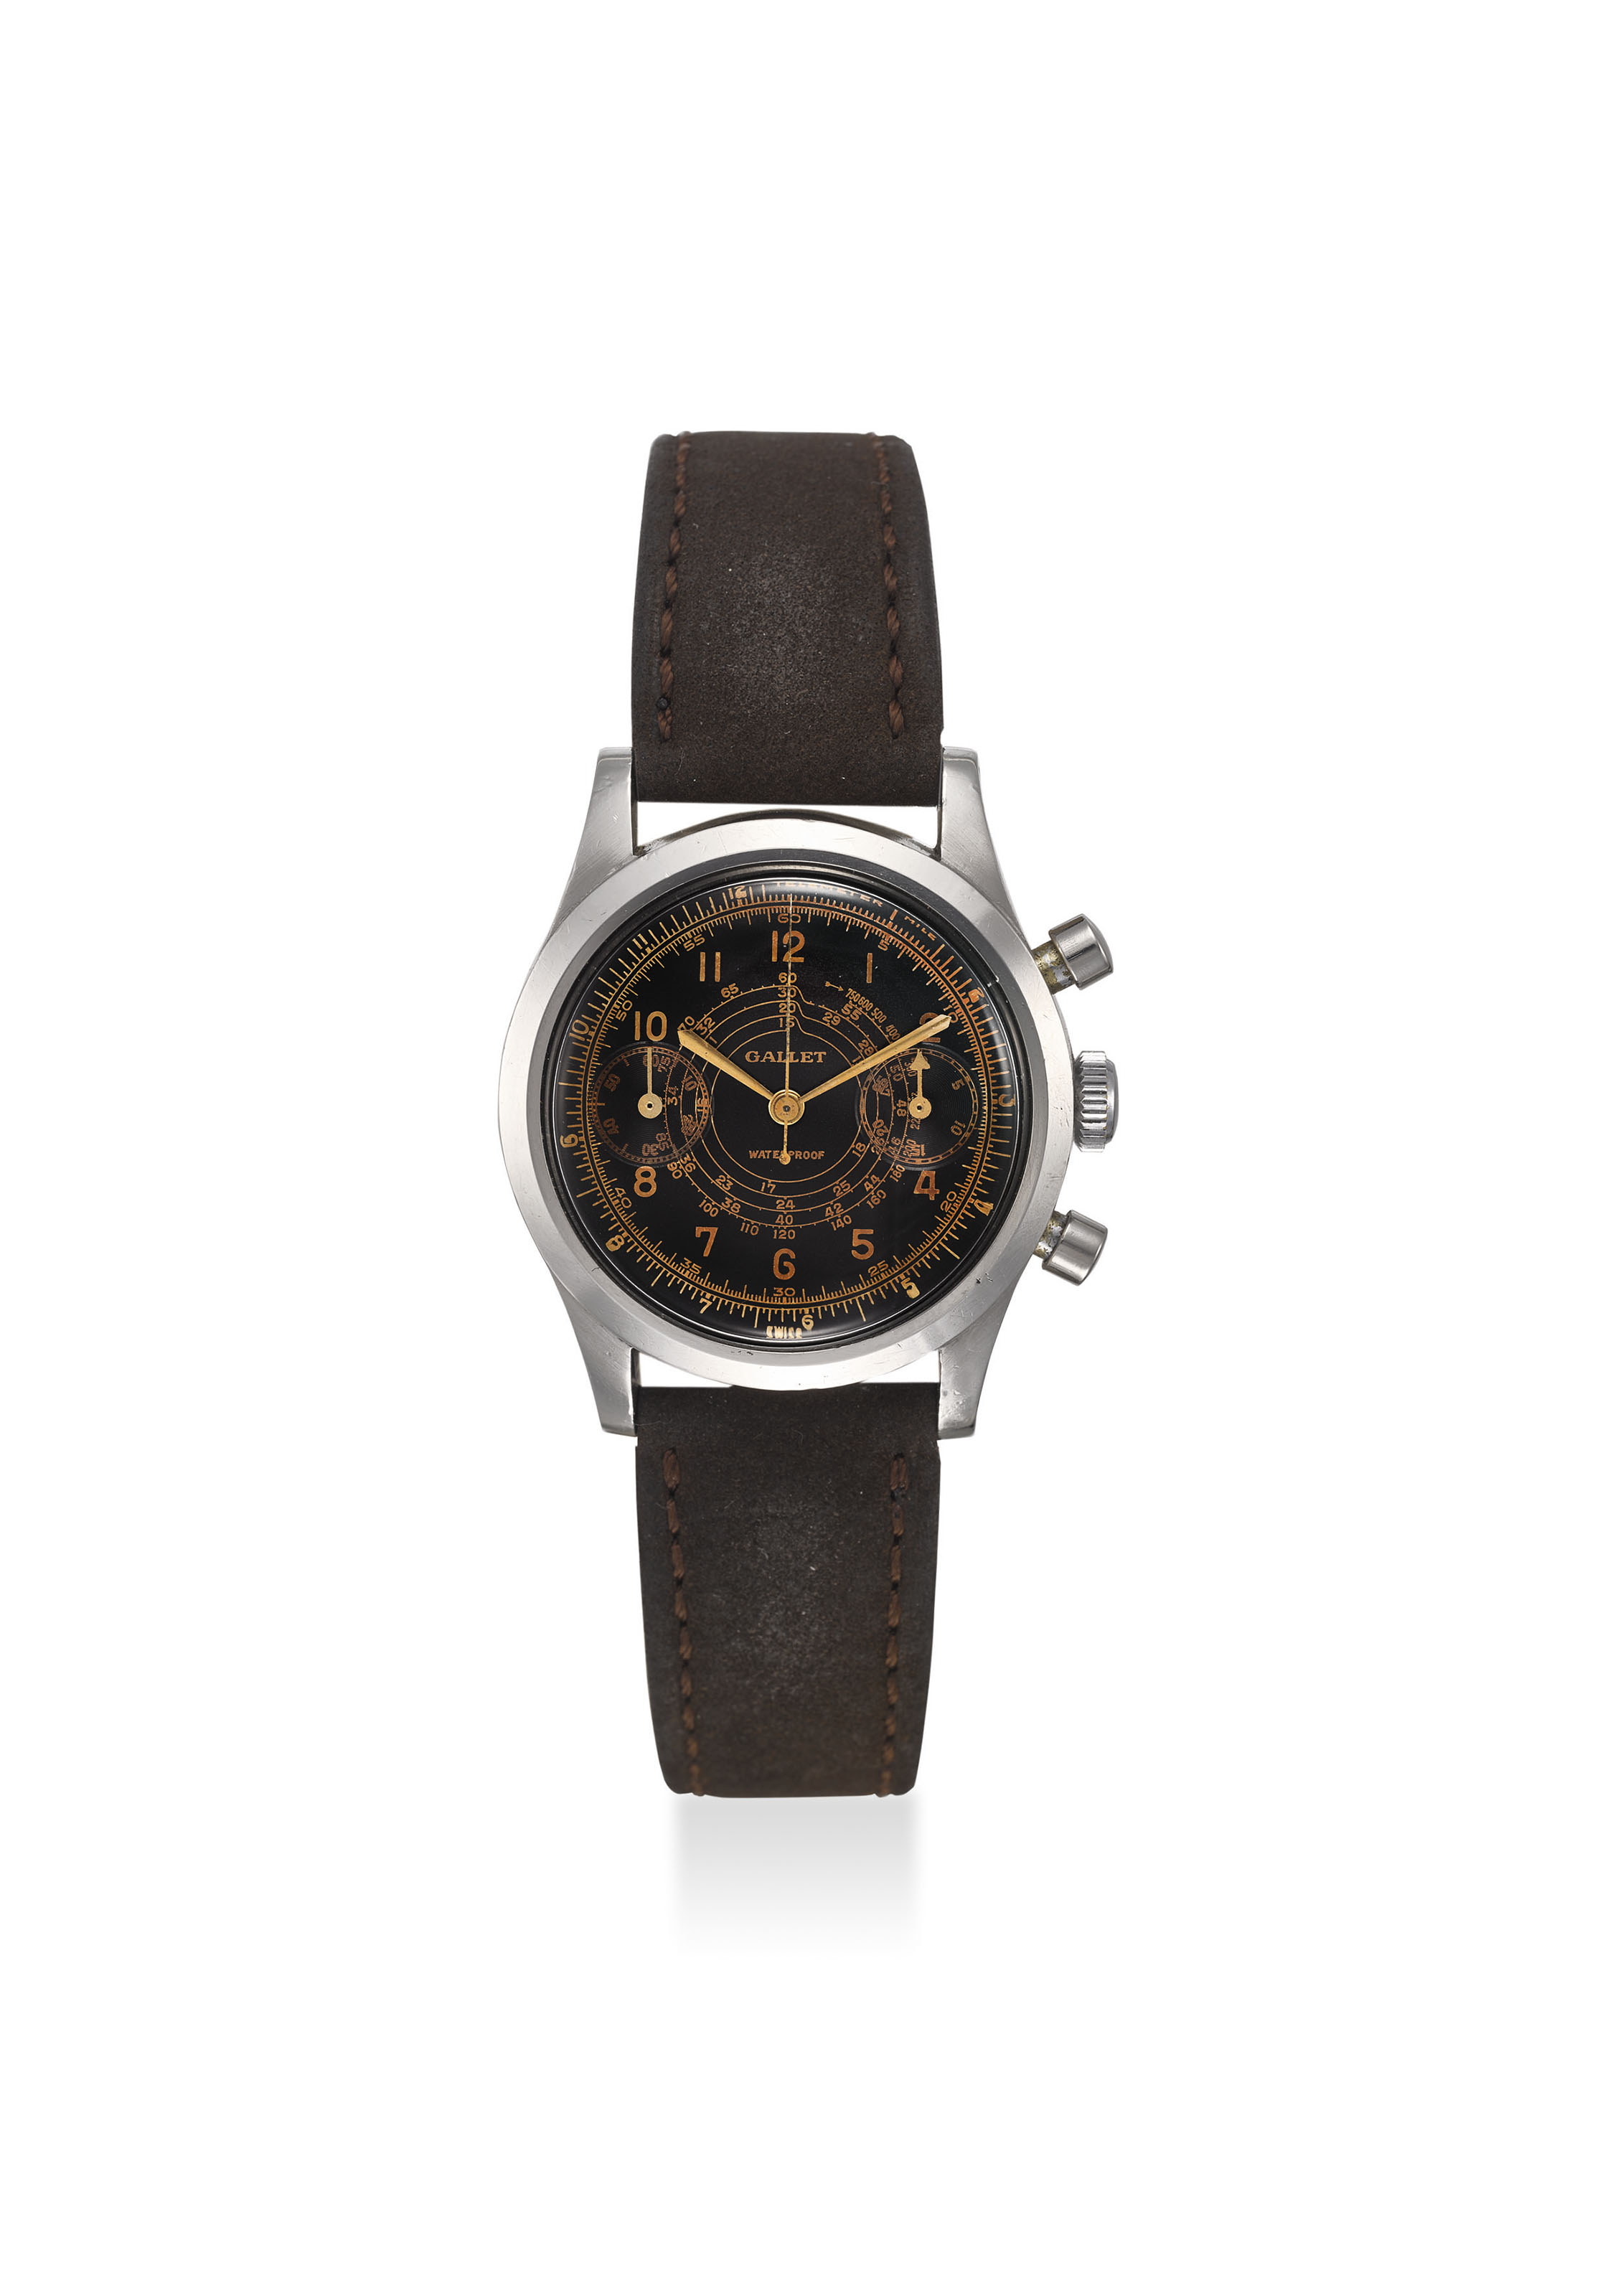 GALLET. A FINE AND RARE STAINLESS STEEL MULTICHRON PILOT CHRONOGRAPH MANUAL WINDING WRISTWATCH